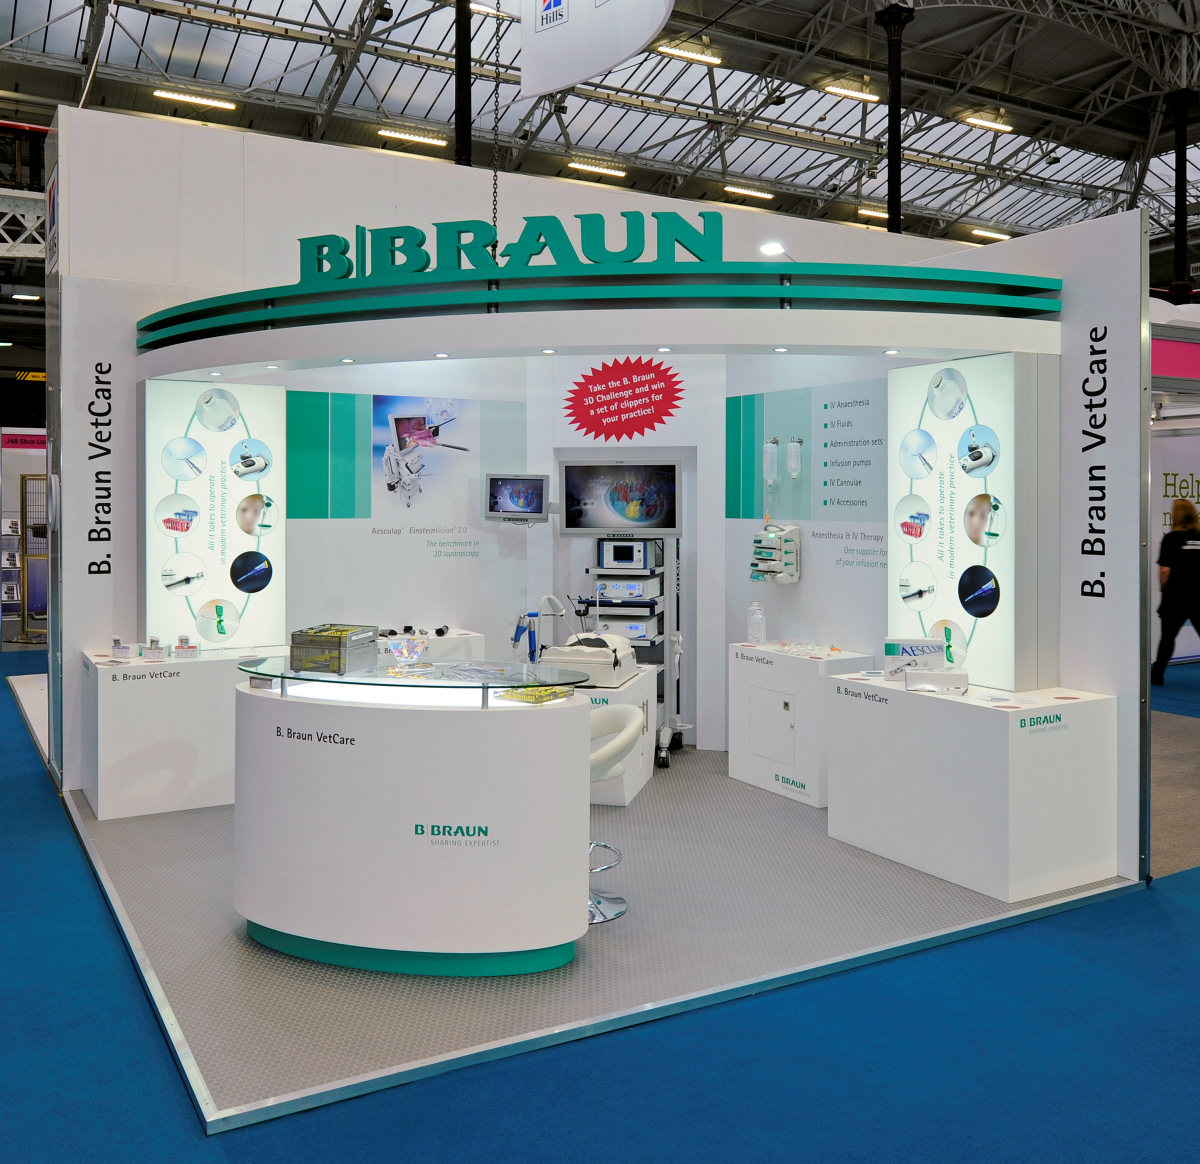 Exhibition Stand Design Examples : Exhibition stand examples motion